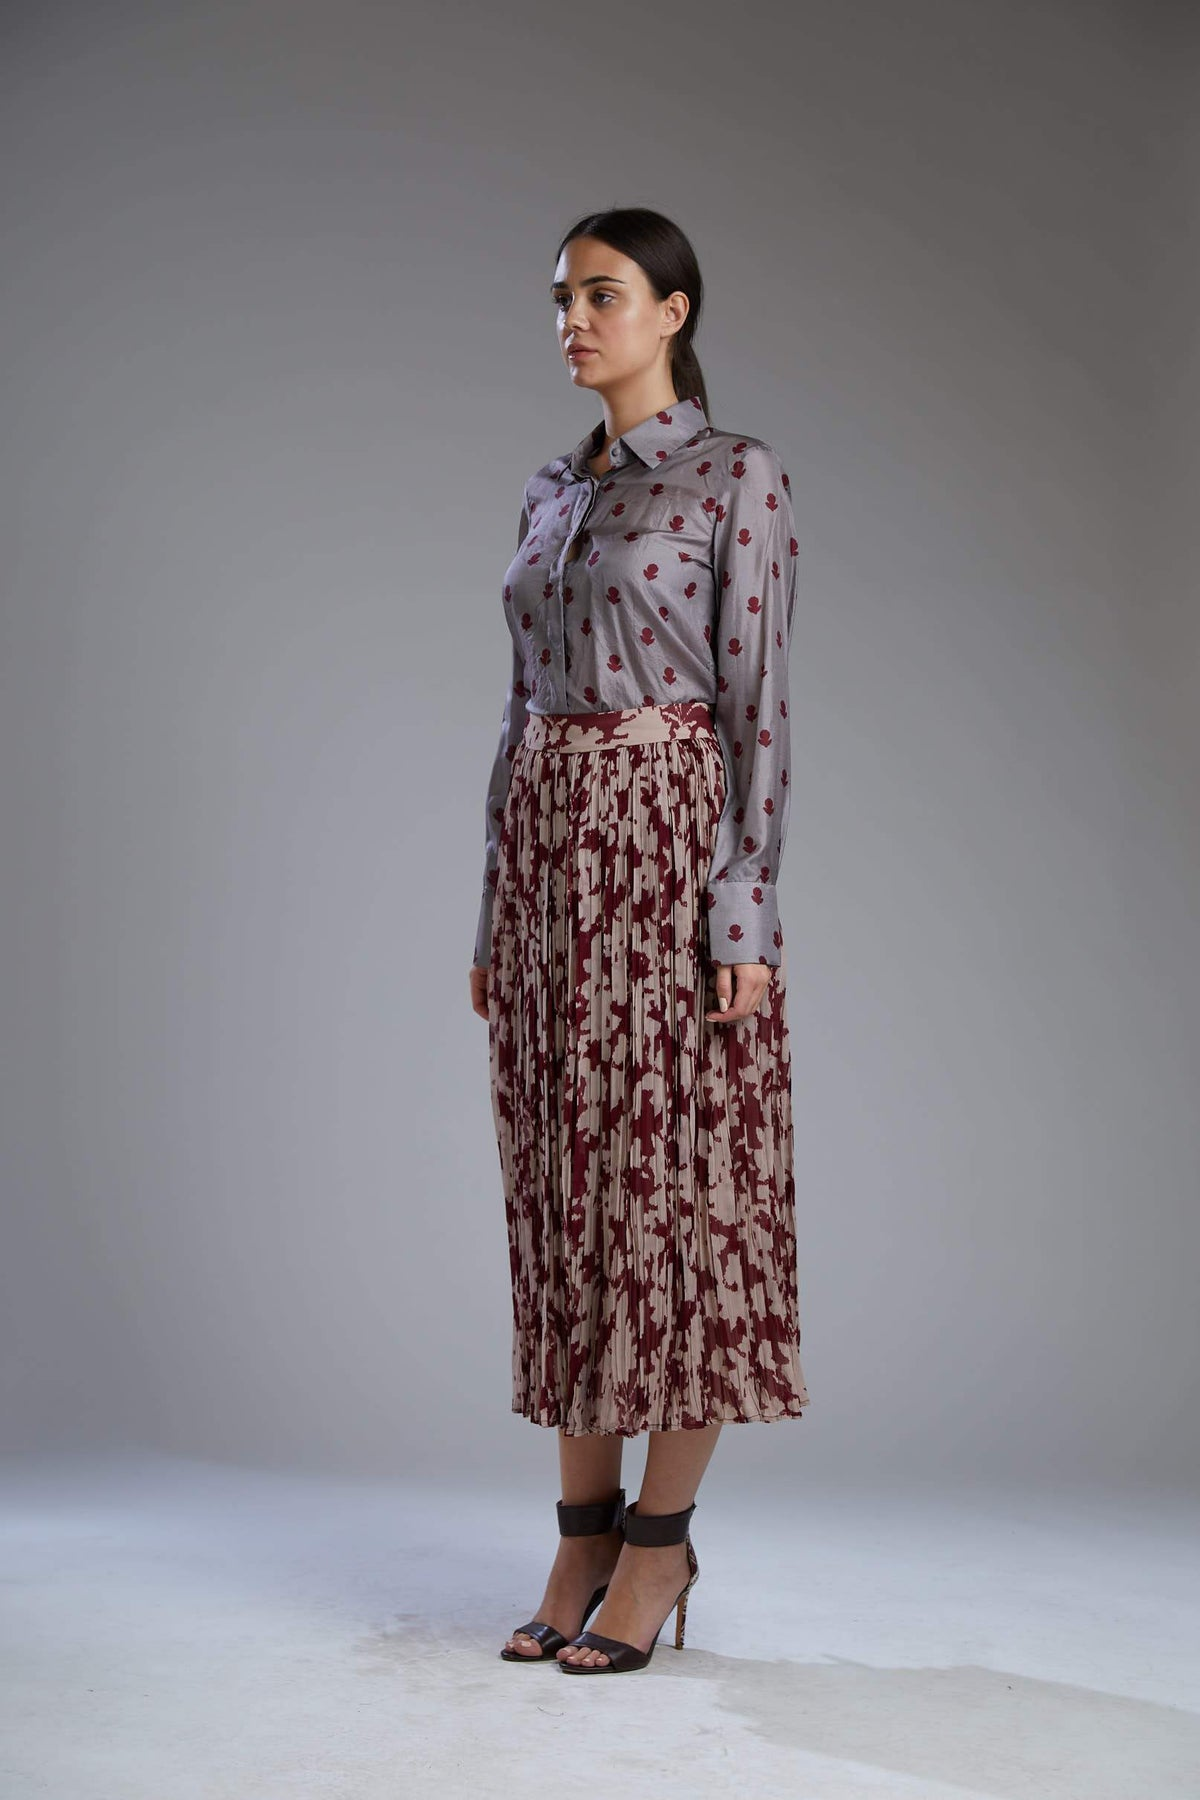 Koai Bottoms Wine and beige crinckled skirt